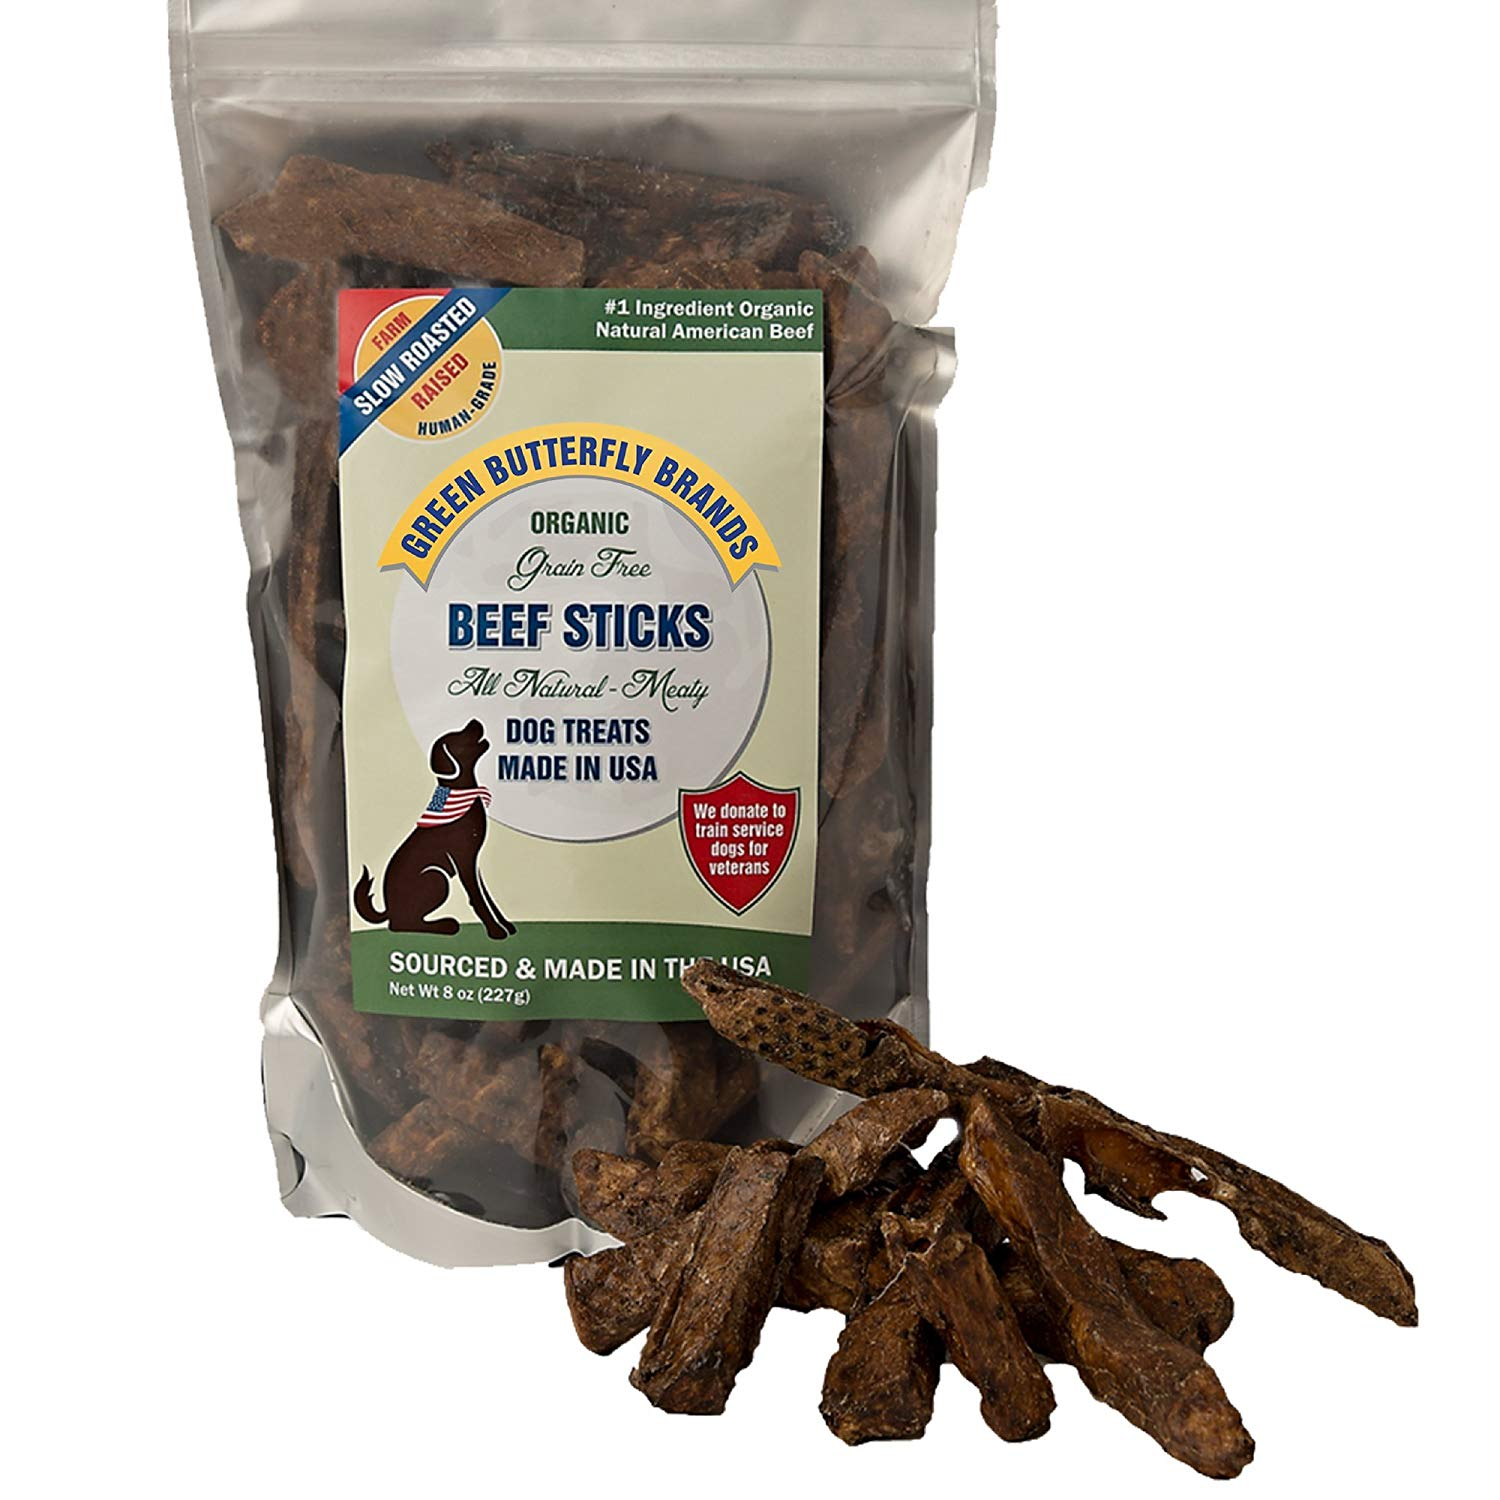 Green Butterfly Brands Organic Grain Free Dog Treats Reviews by www.puppyurl.com